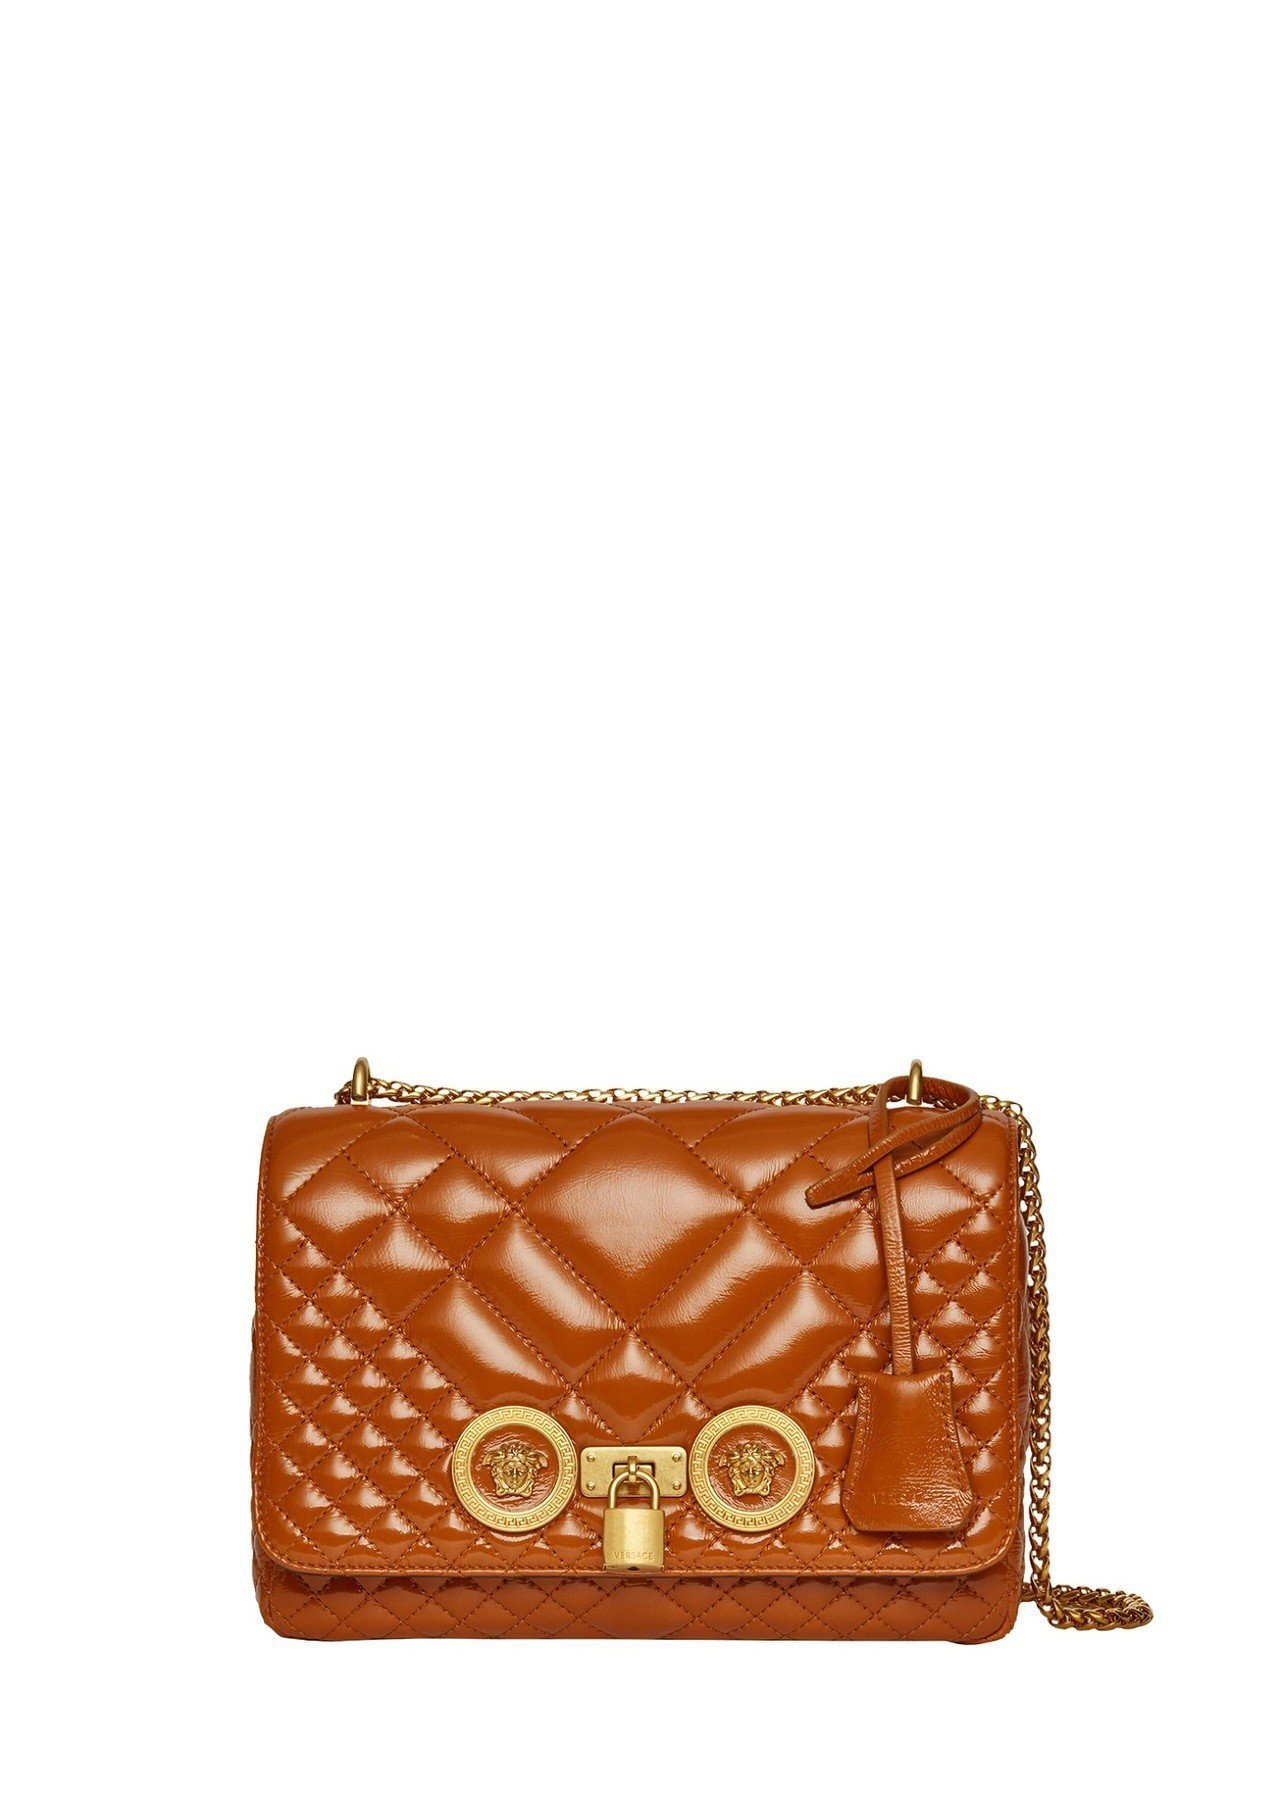 Versace Icon Quilted古銅色格紋鍊帶包,75,500元。圖/V...